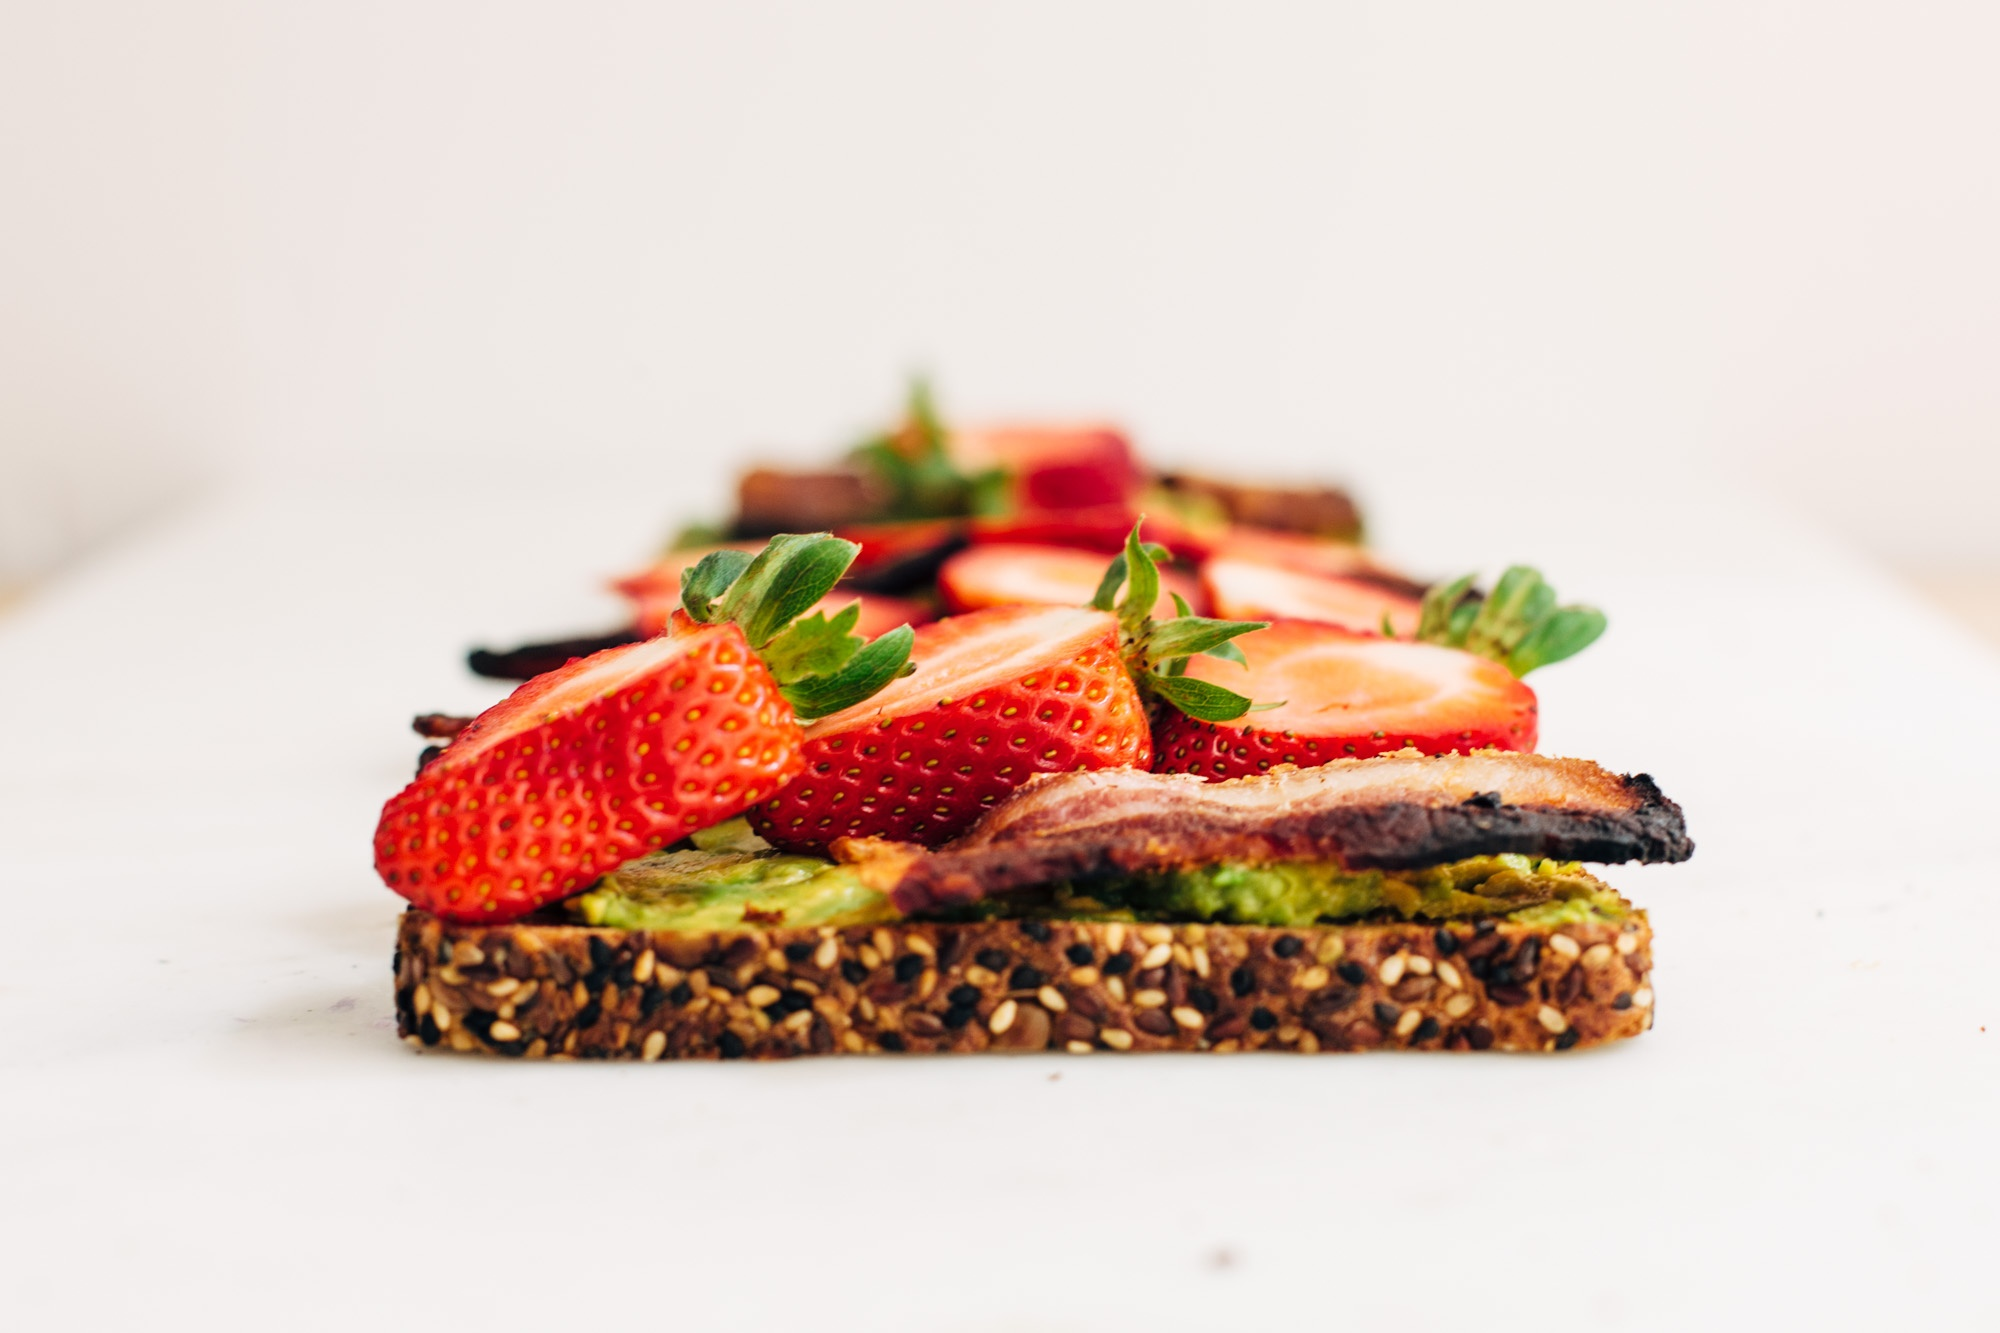 Avocado Toast with Strawberries and Bacon